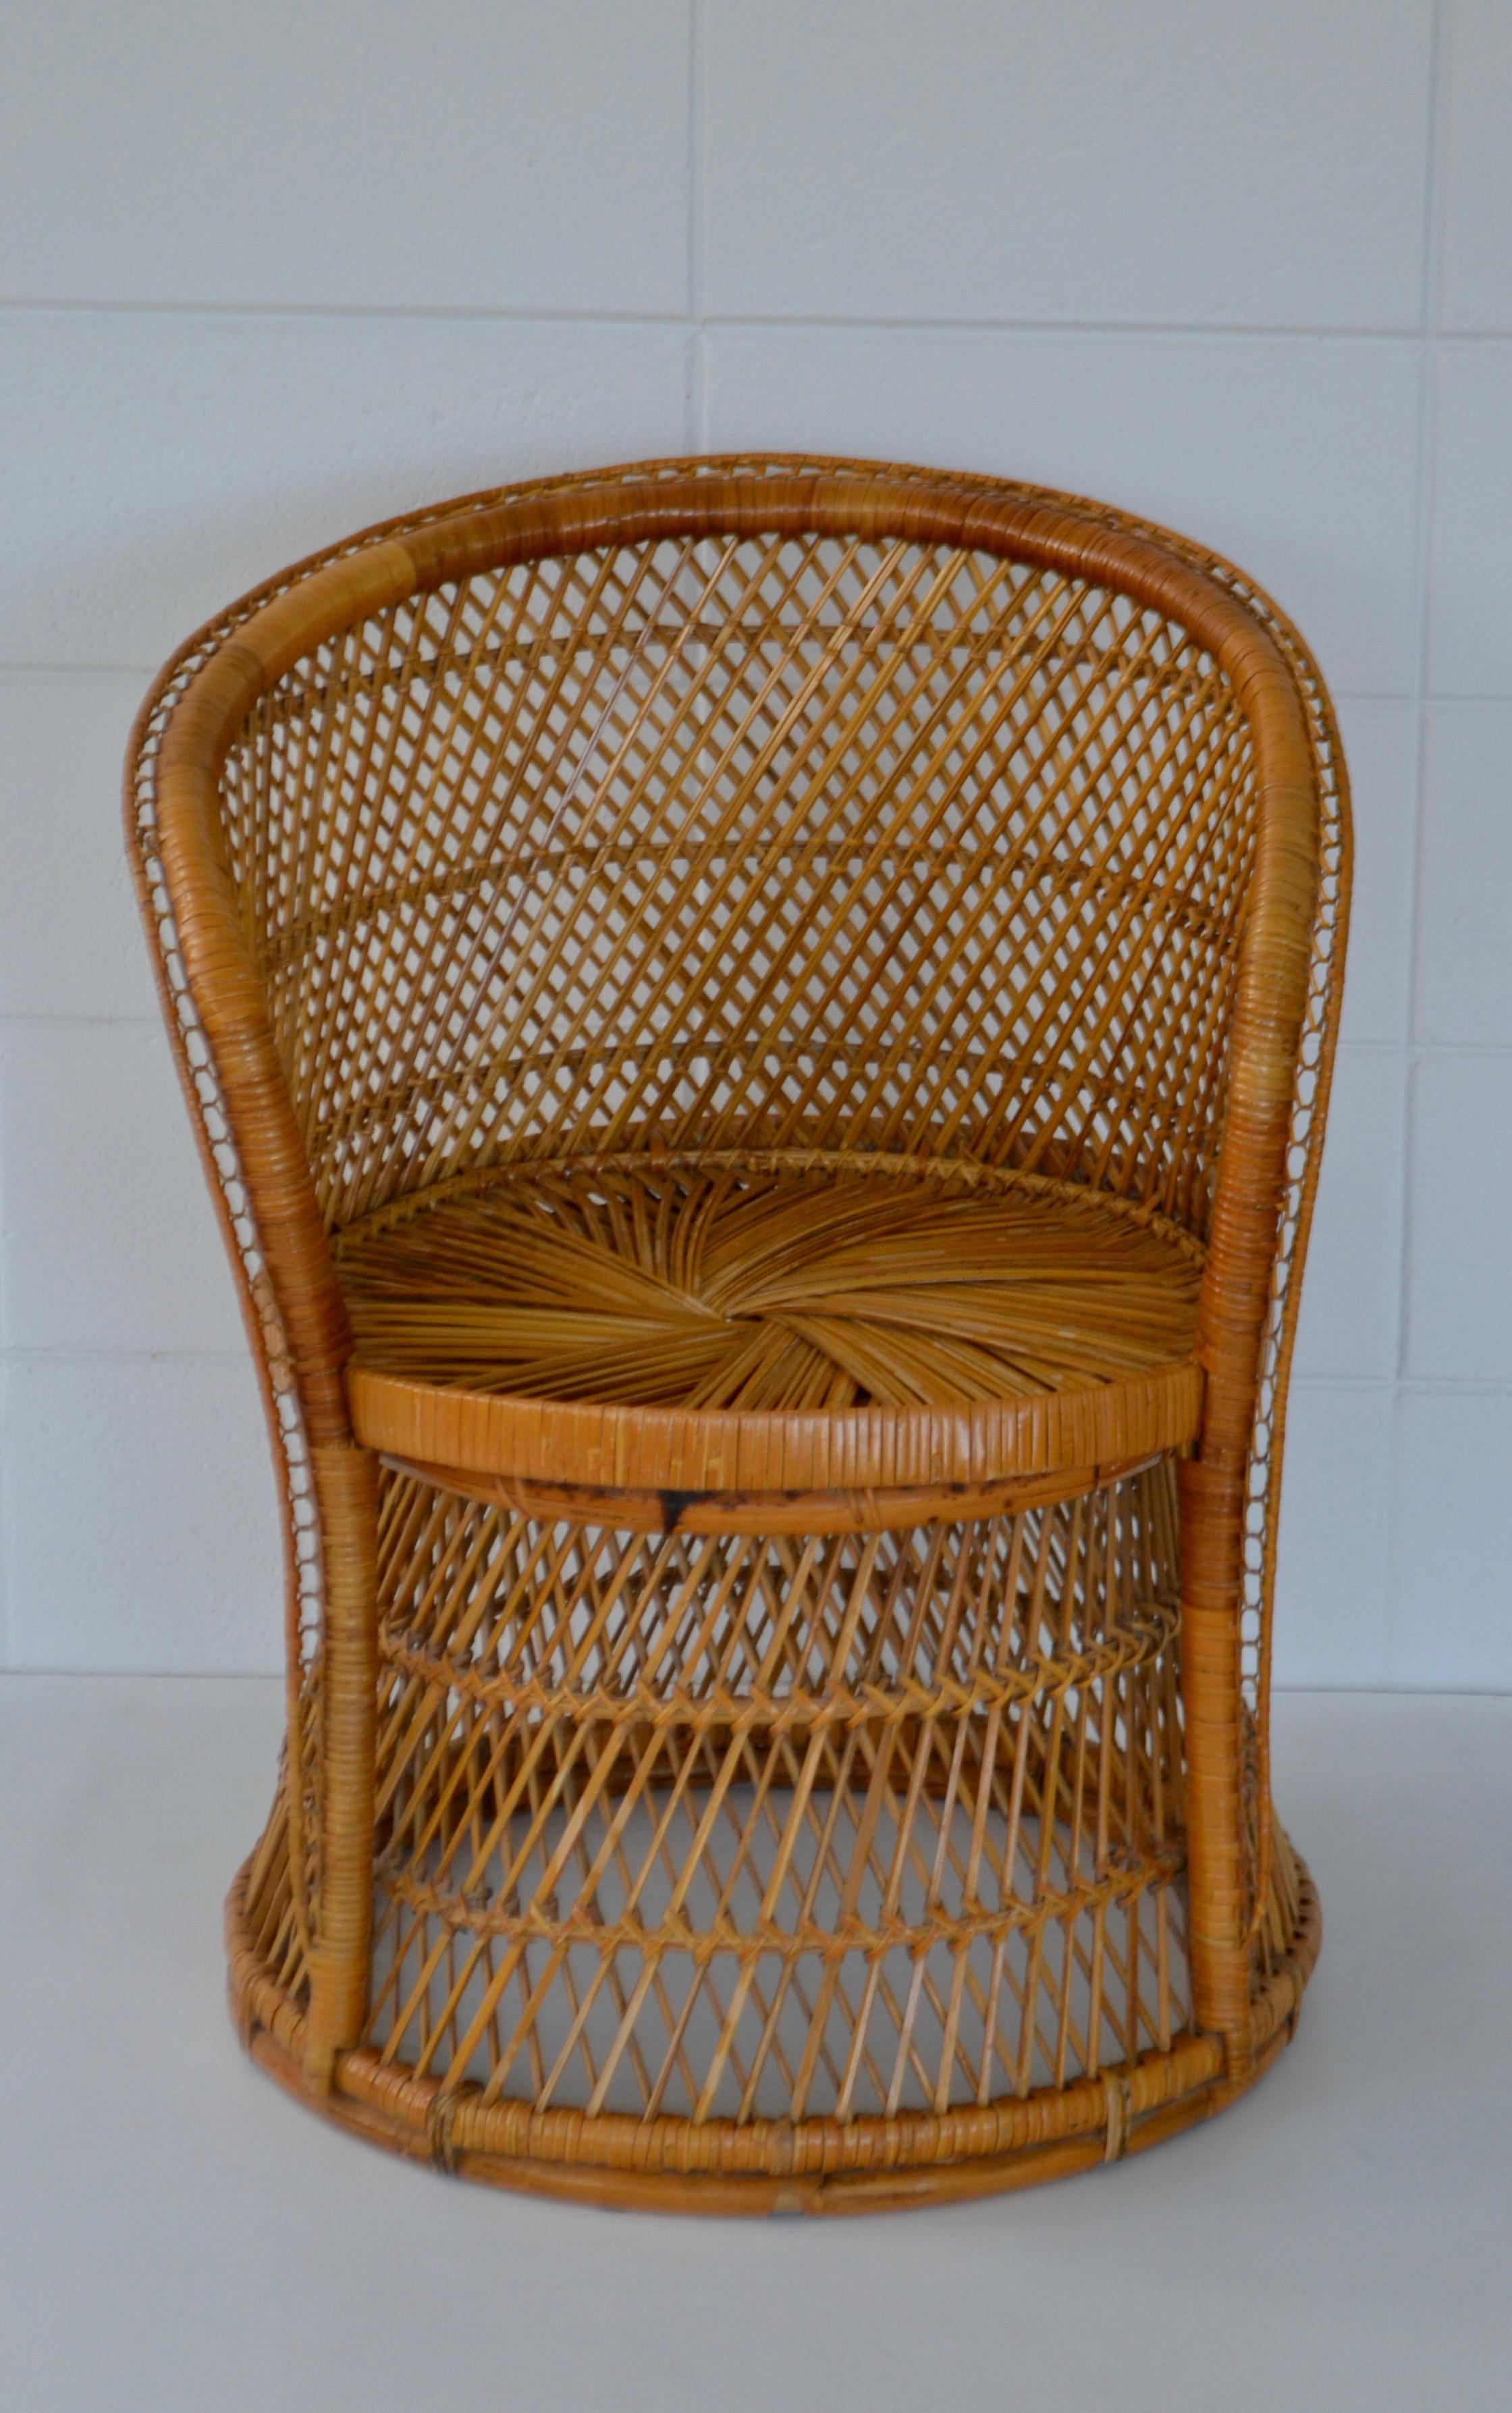 Rattan Lounge Chair Philippines Midcentury Woven Rattan Tub Chair